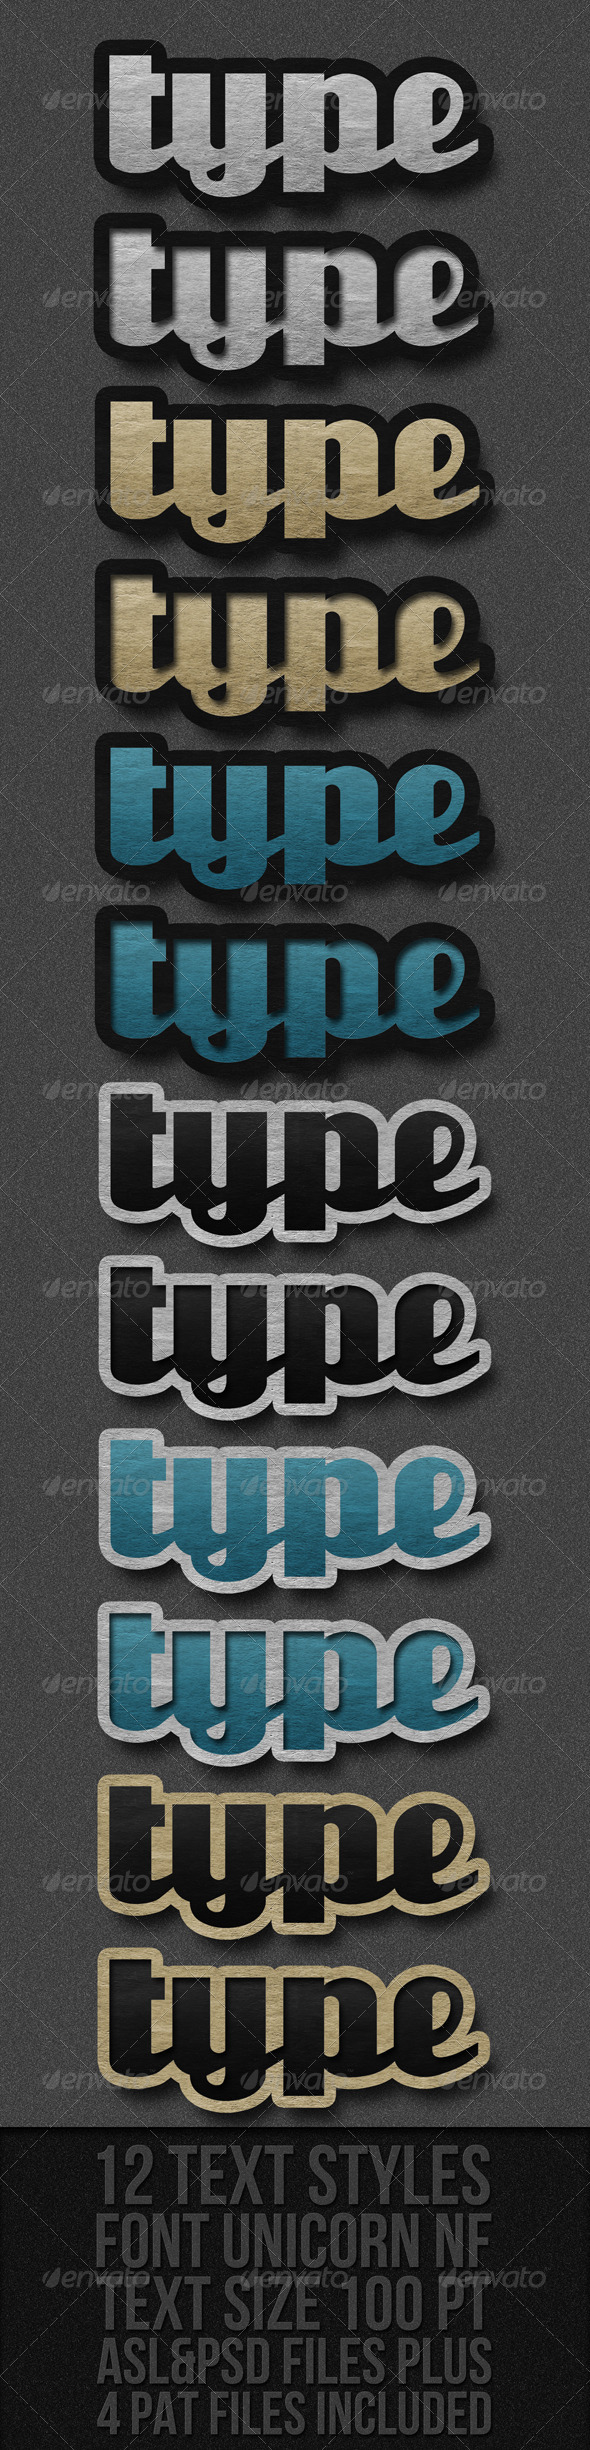 GraphicRiver Text Styles 251791